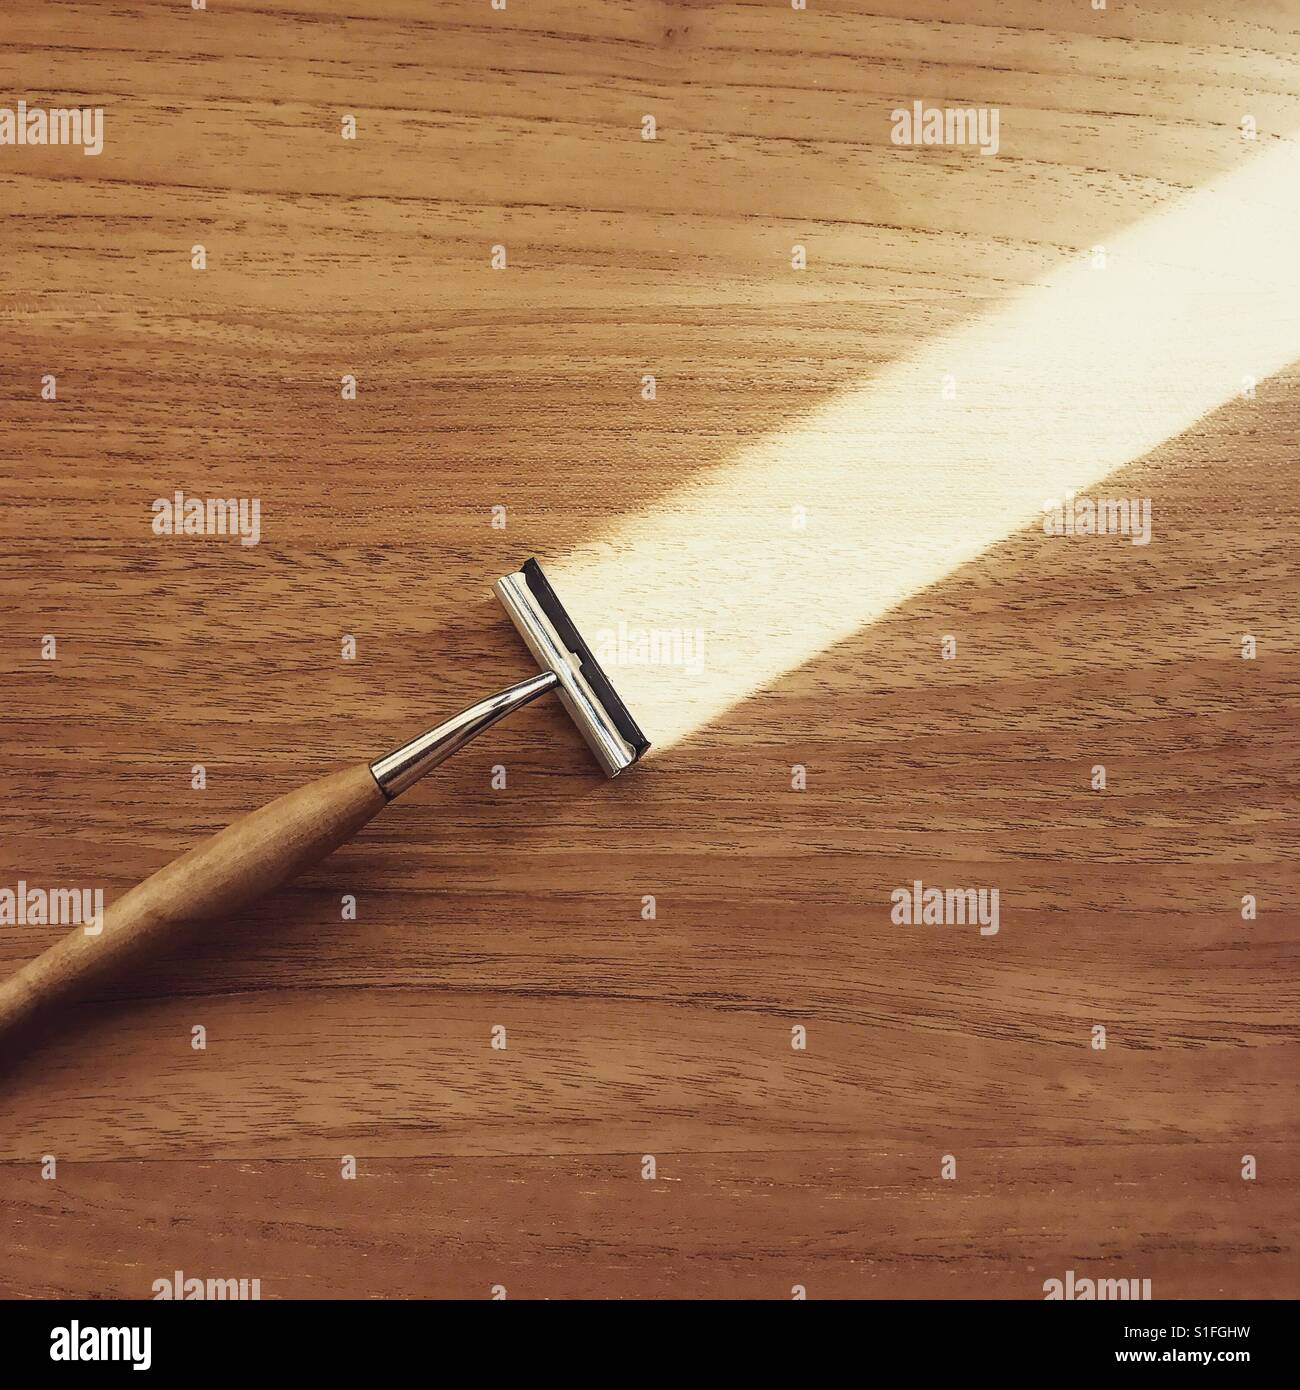 A razor looks like it shaves wood by being lit from a certain angle - Stock Image